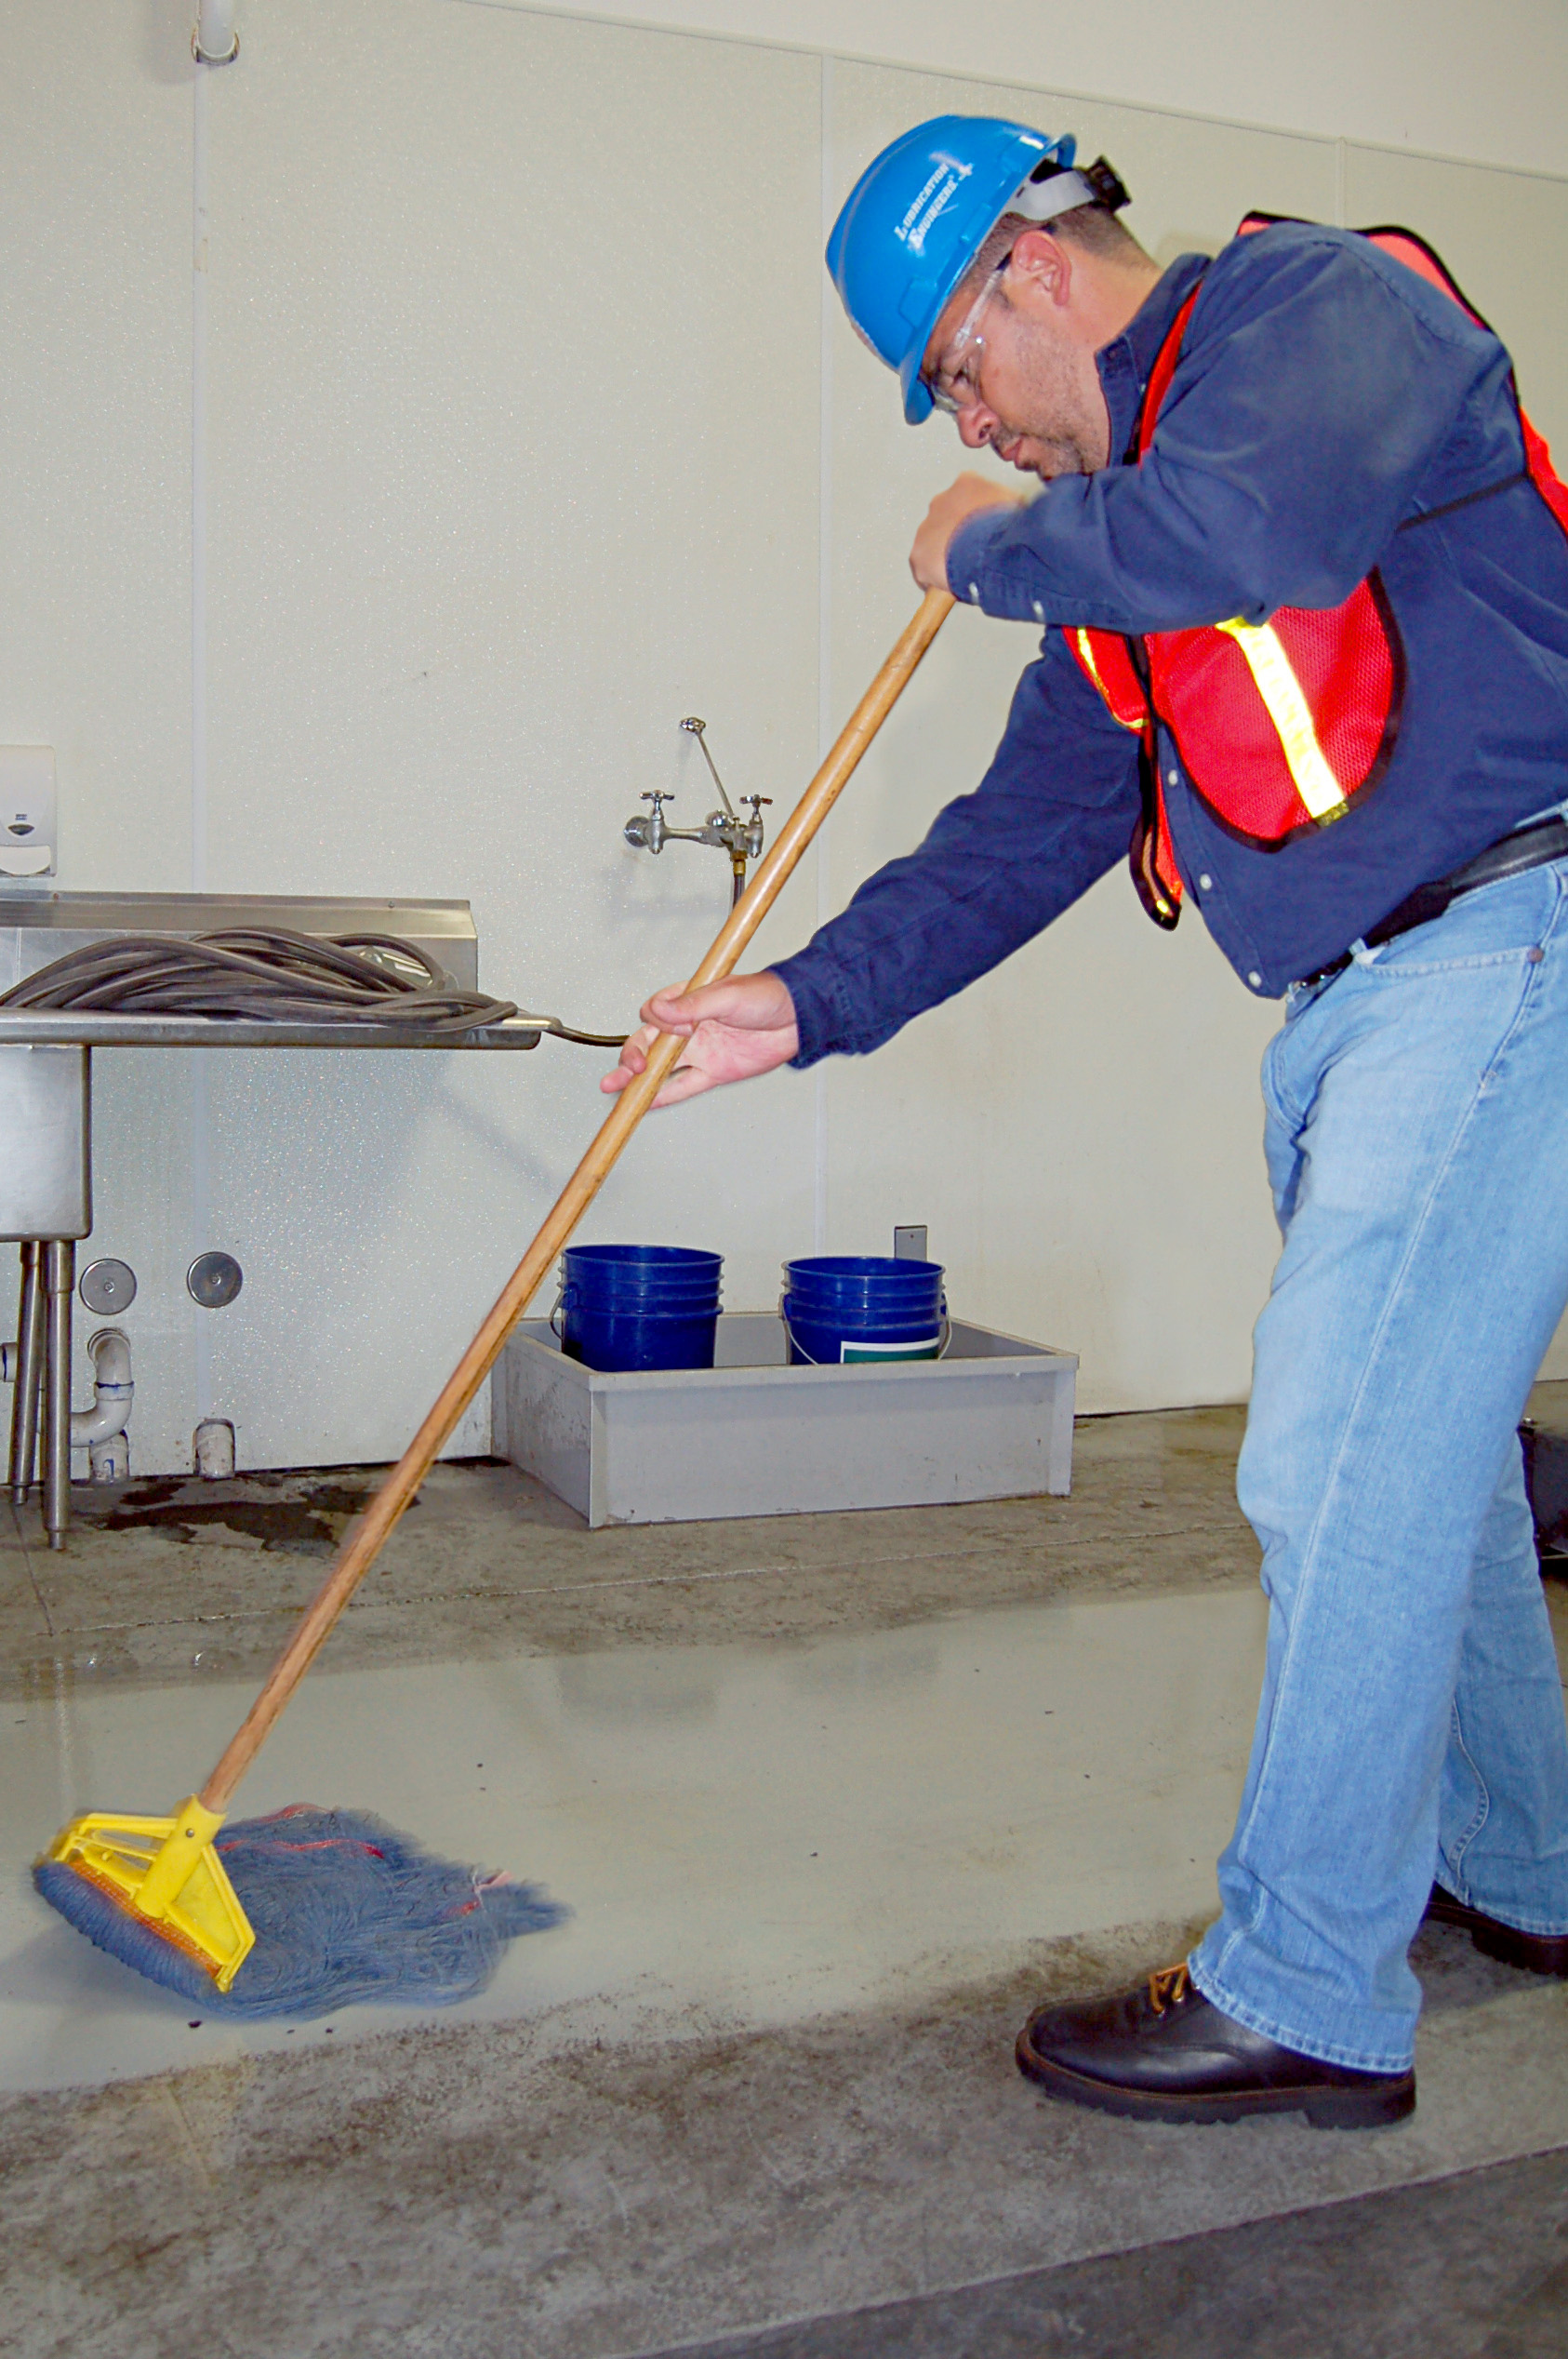 LE Introduces Greentastic Industrial Cleaner for Fast